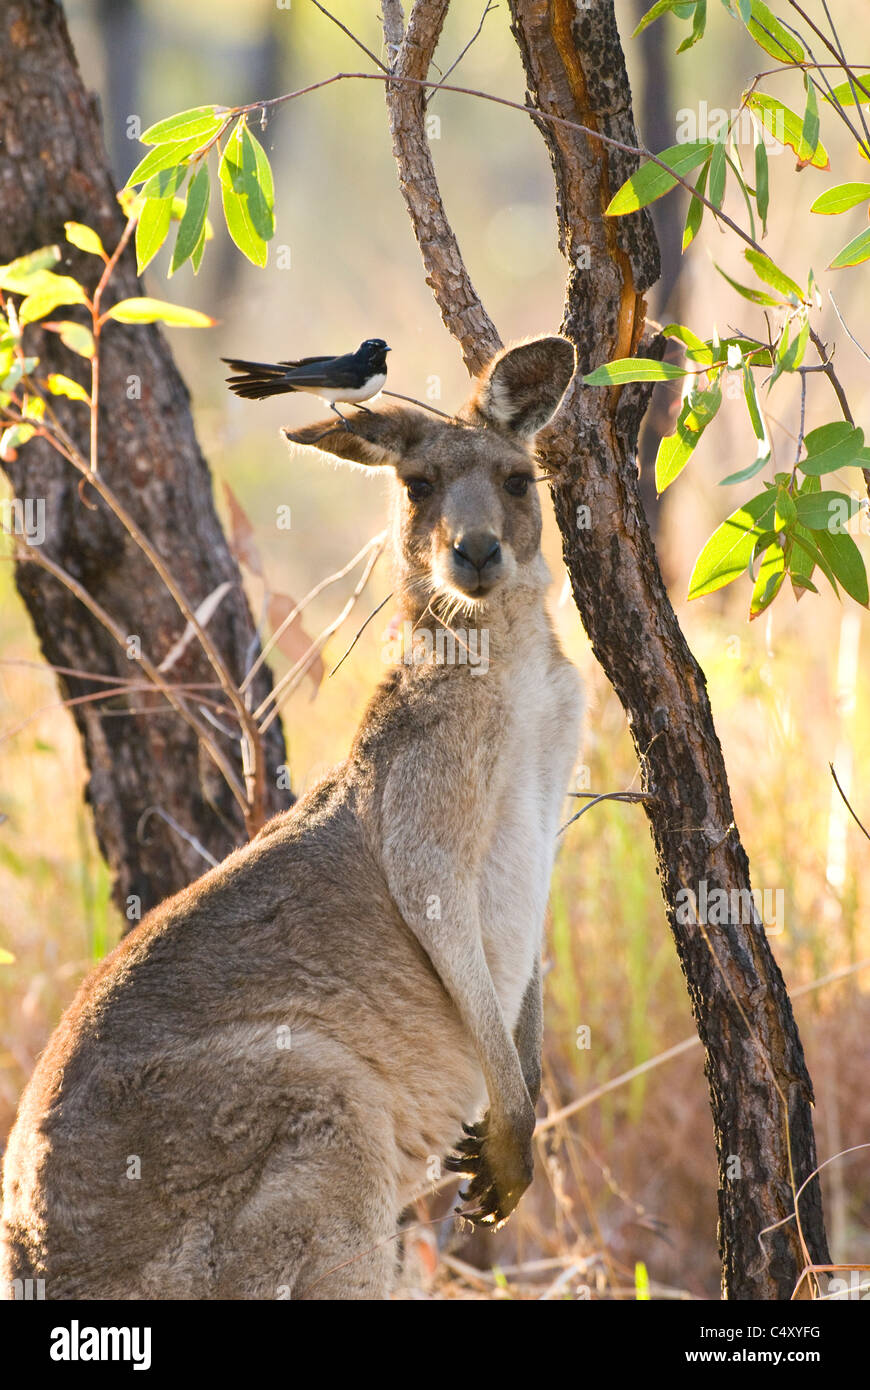 Willy wagtail perched on ear of eastern gray kangaroo (Macropus giganteus) in Undara National Park in Queensland Stock Photo